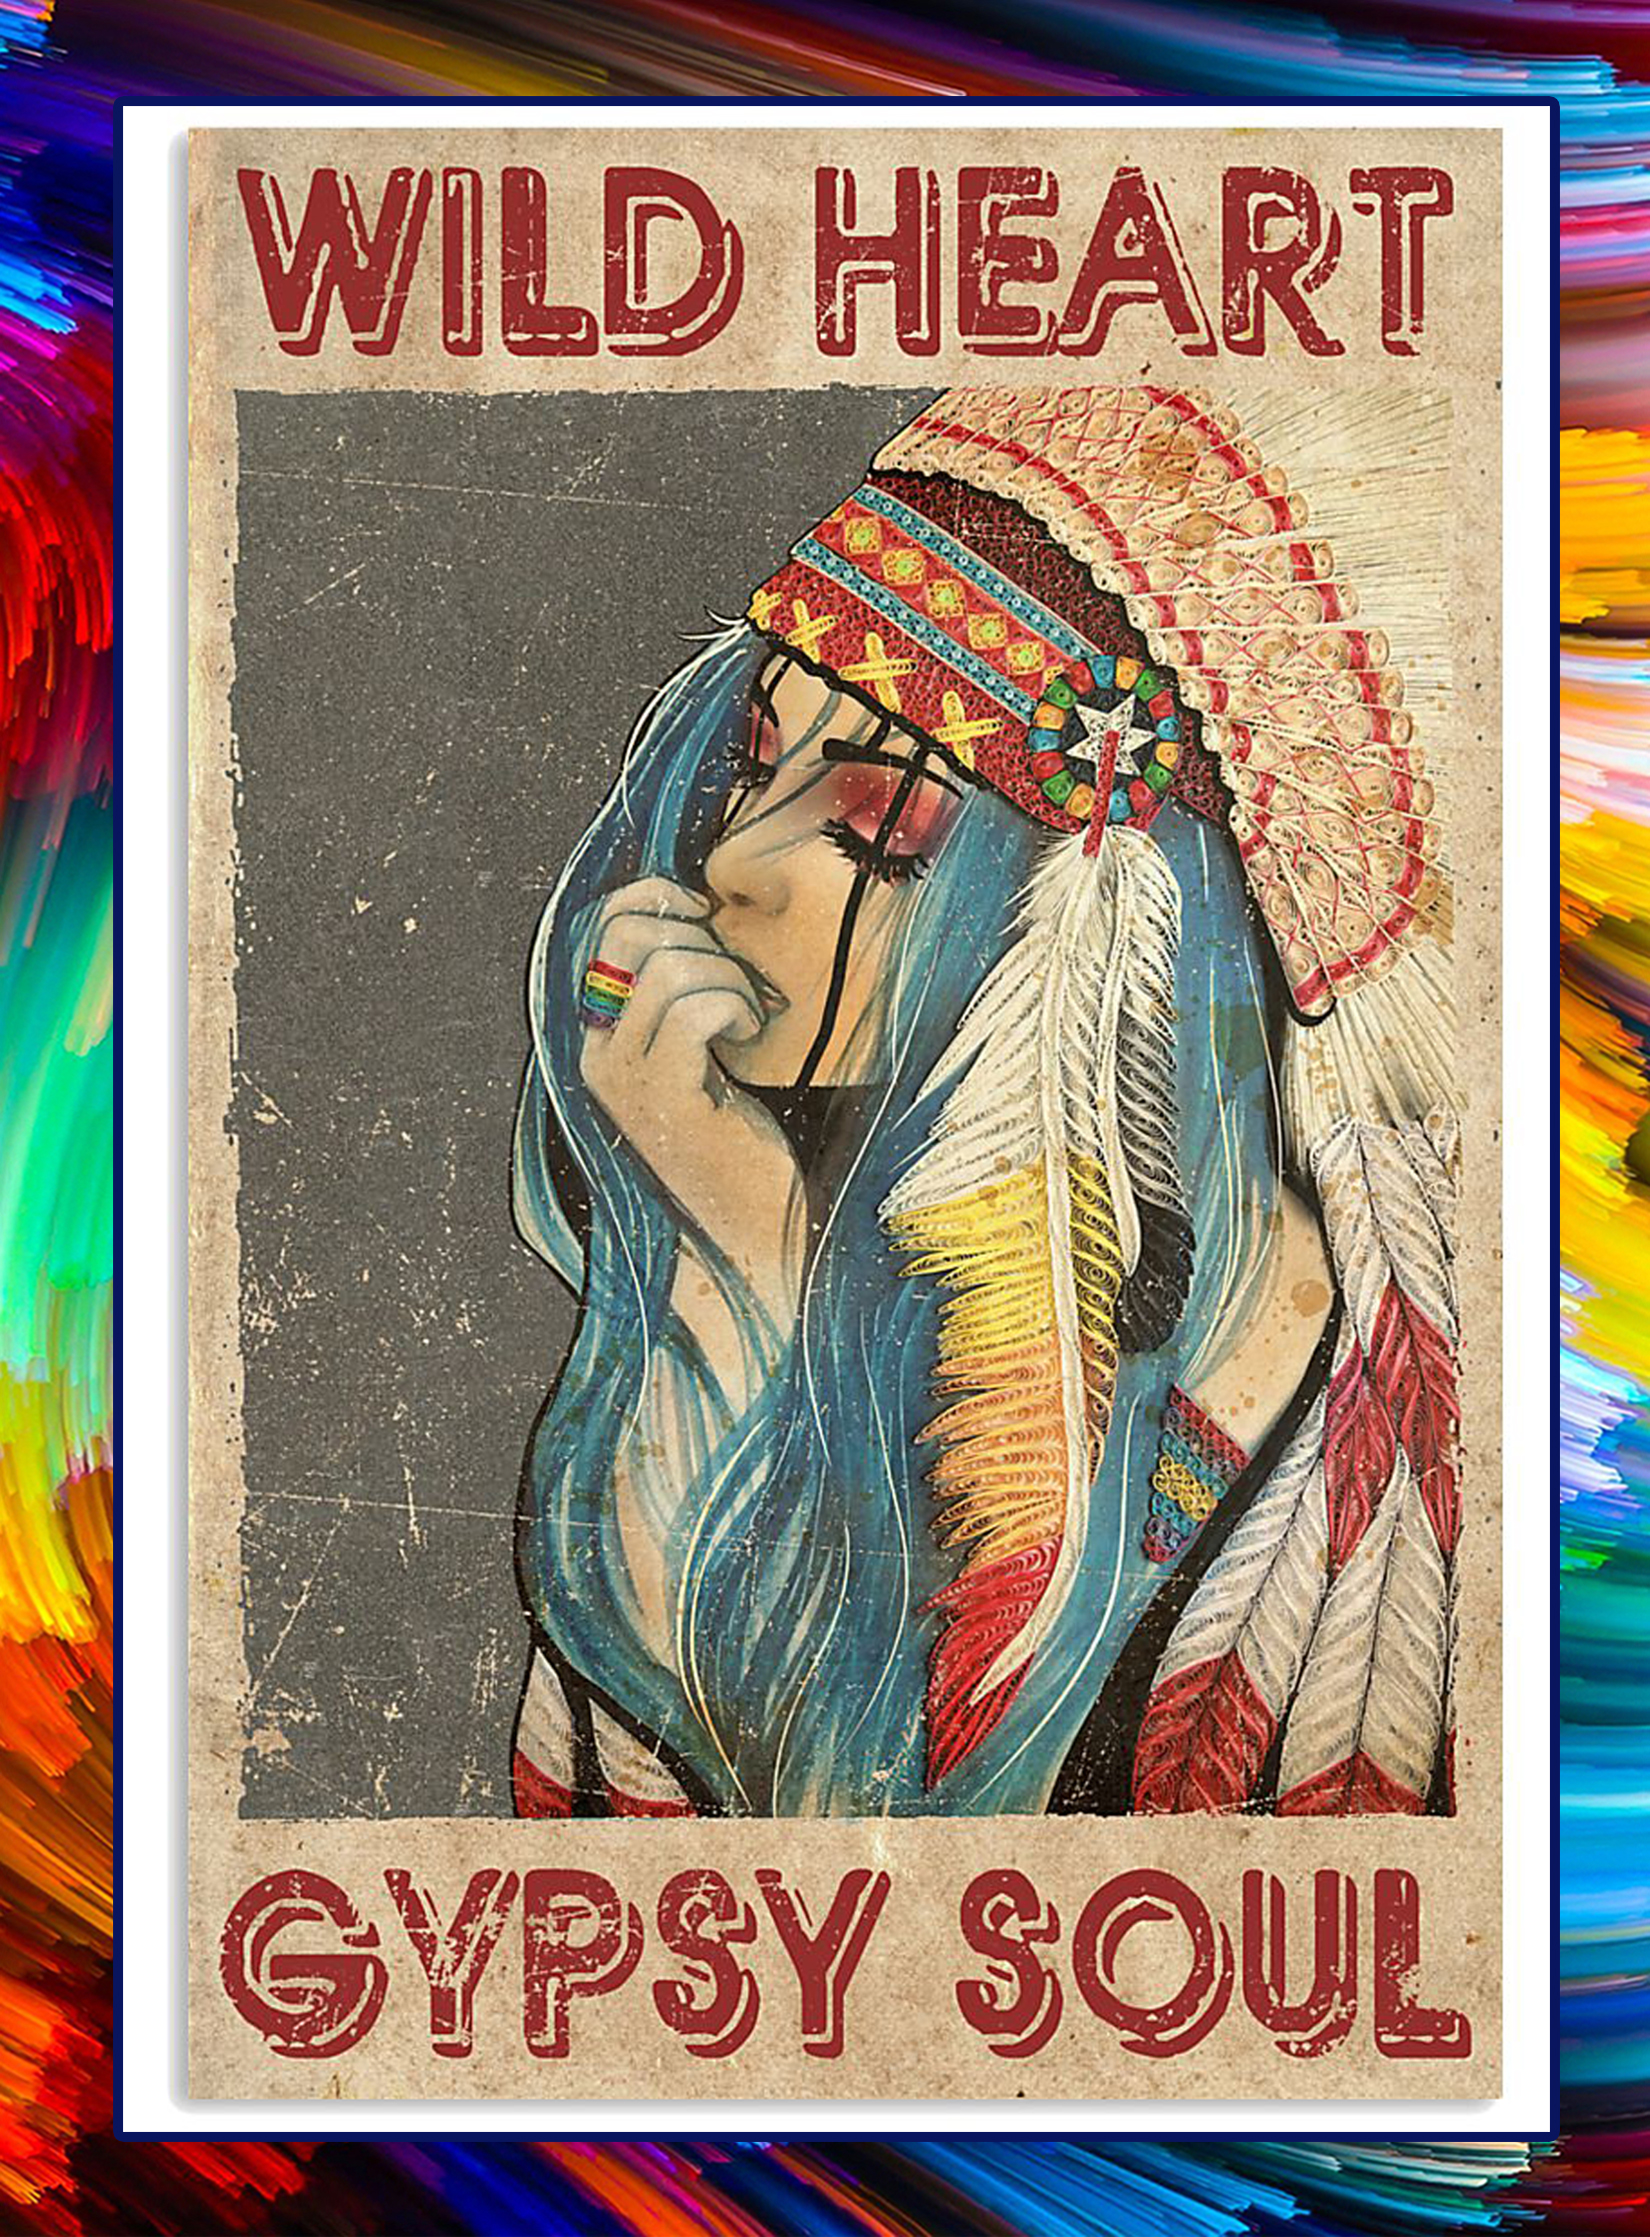 Native girl wild heart gypsy soul poster - A3